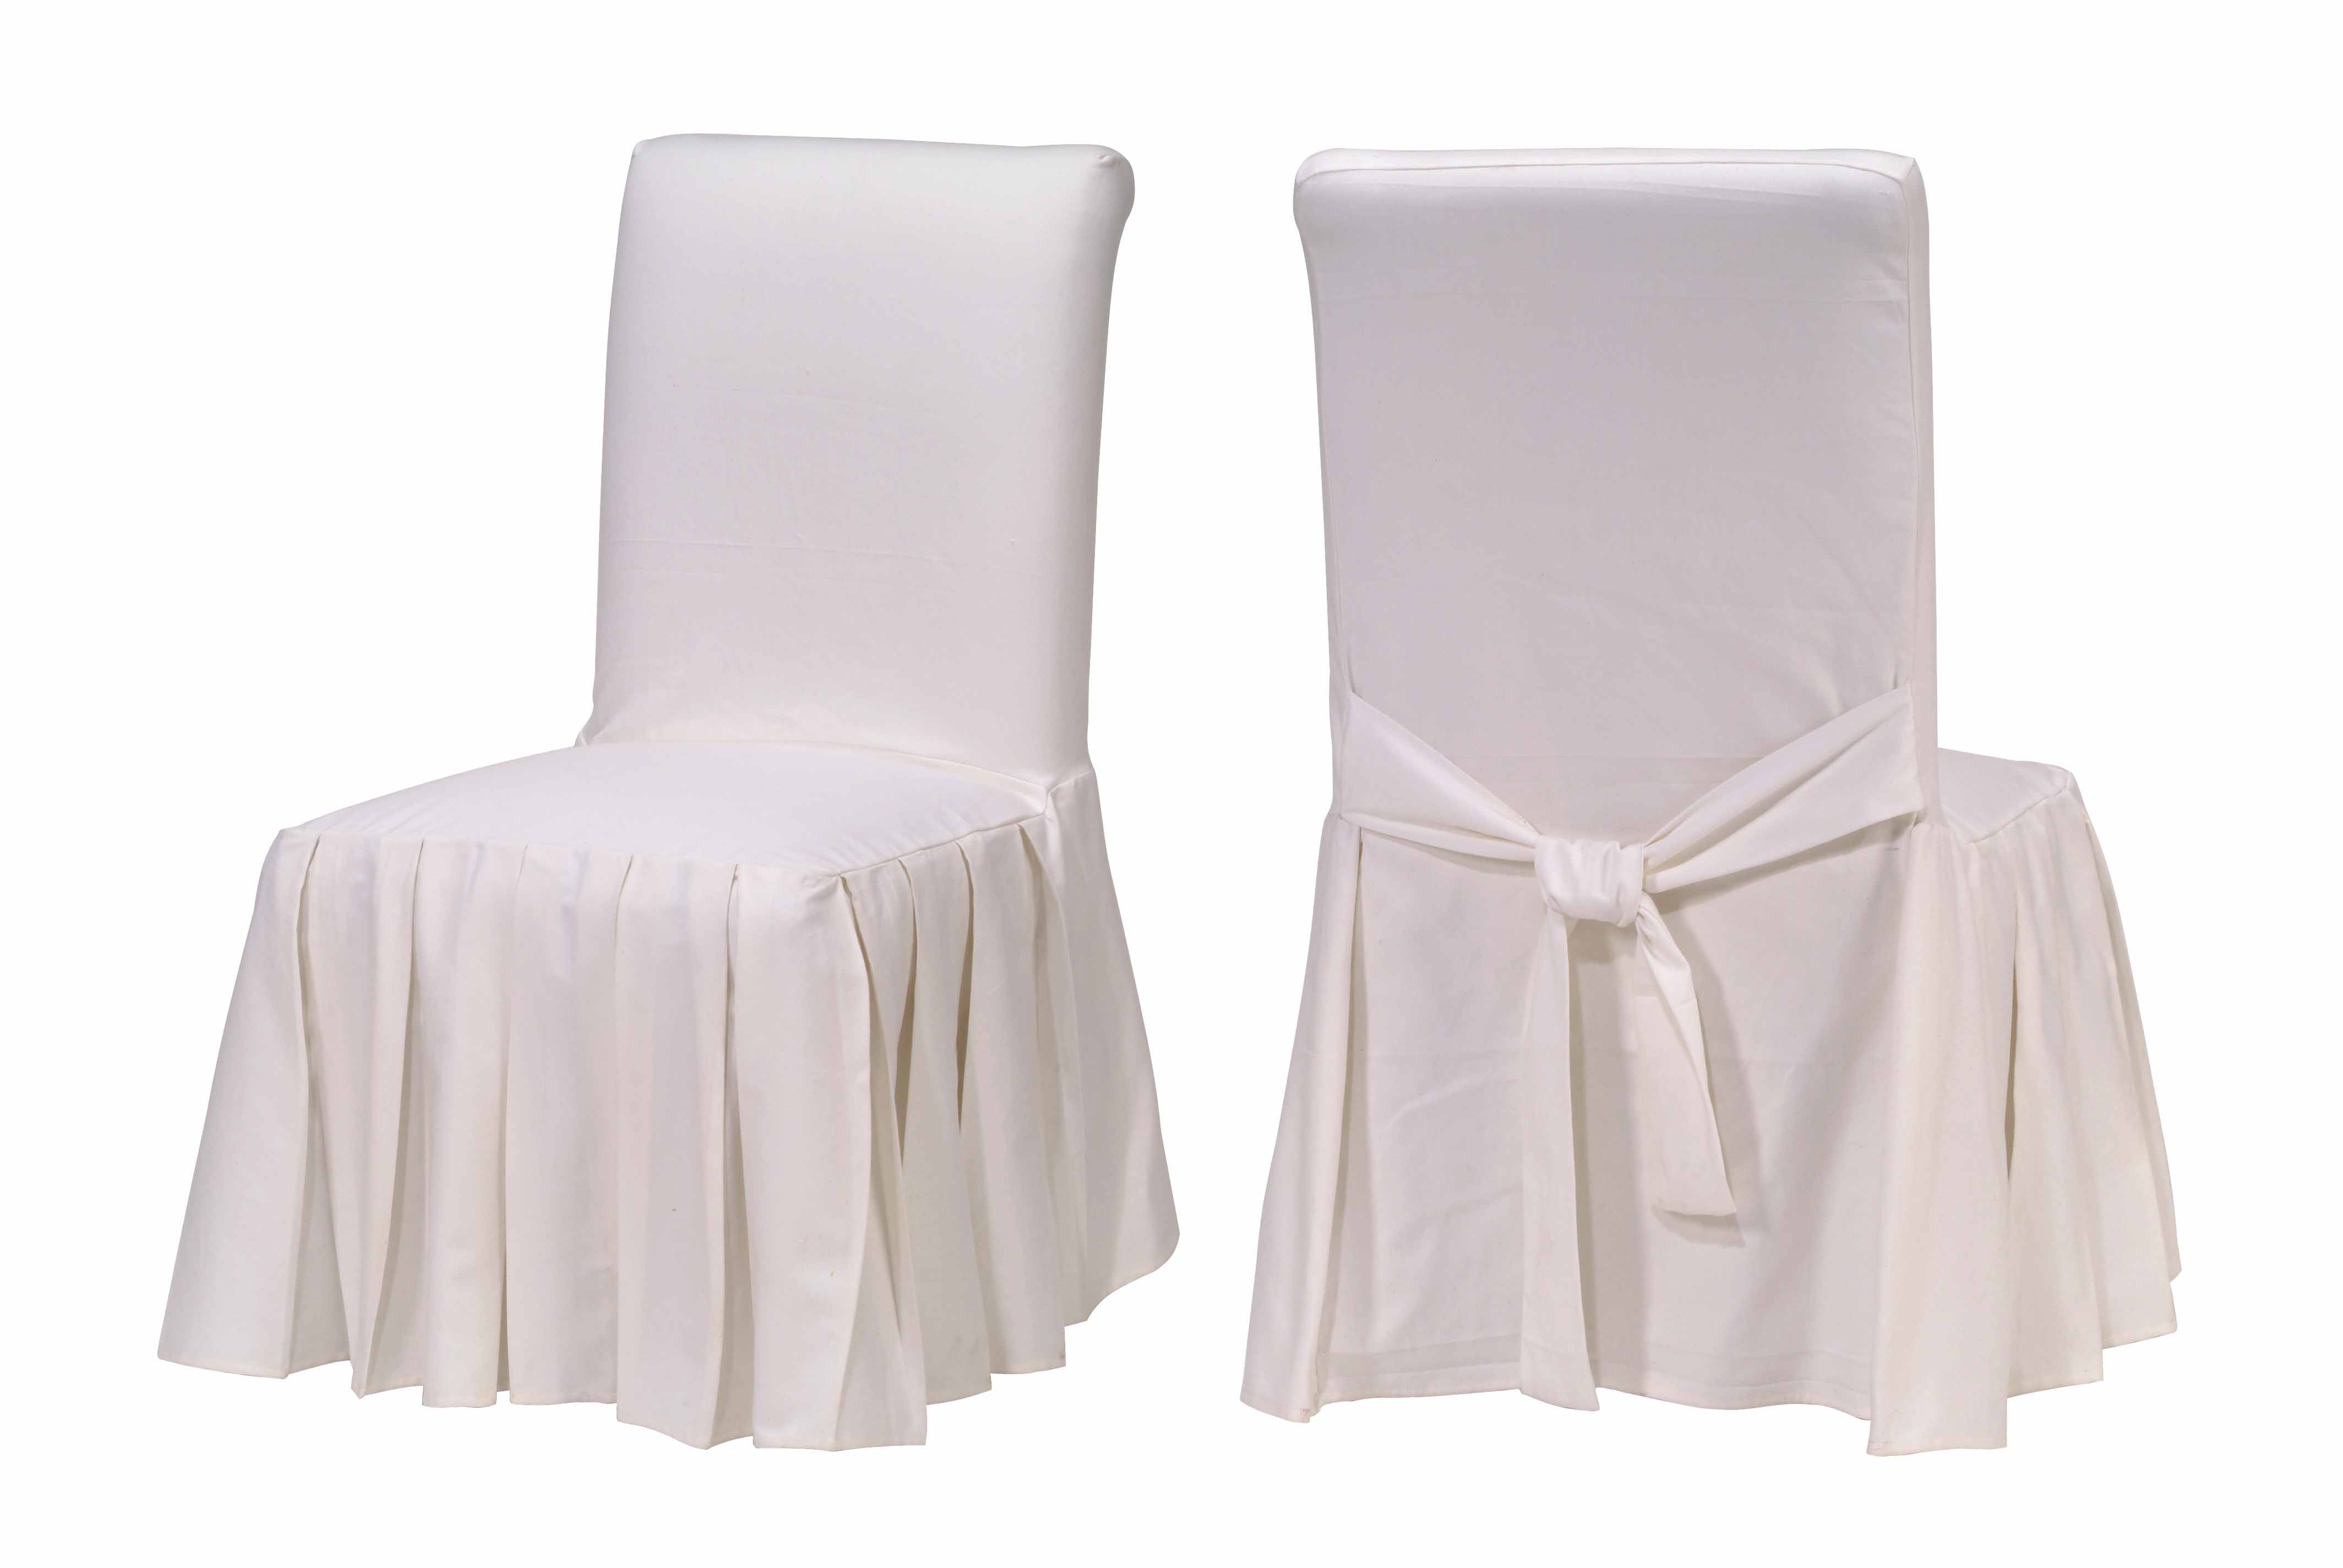 White Dining Chair Slipcovers Cotton Duck White Pleated Dining Chair Slipcovers